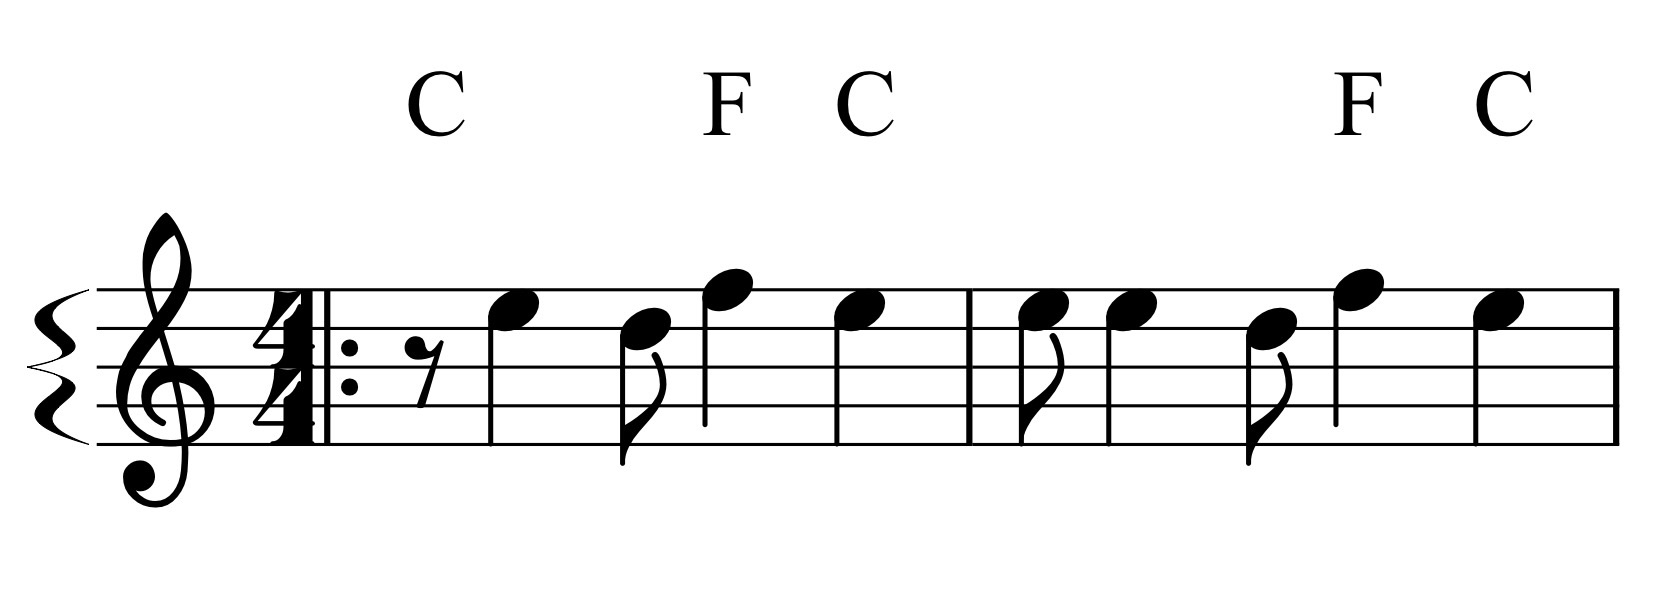 First chord before melody